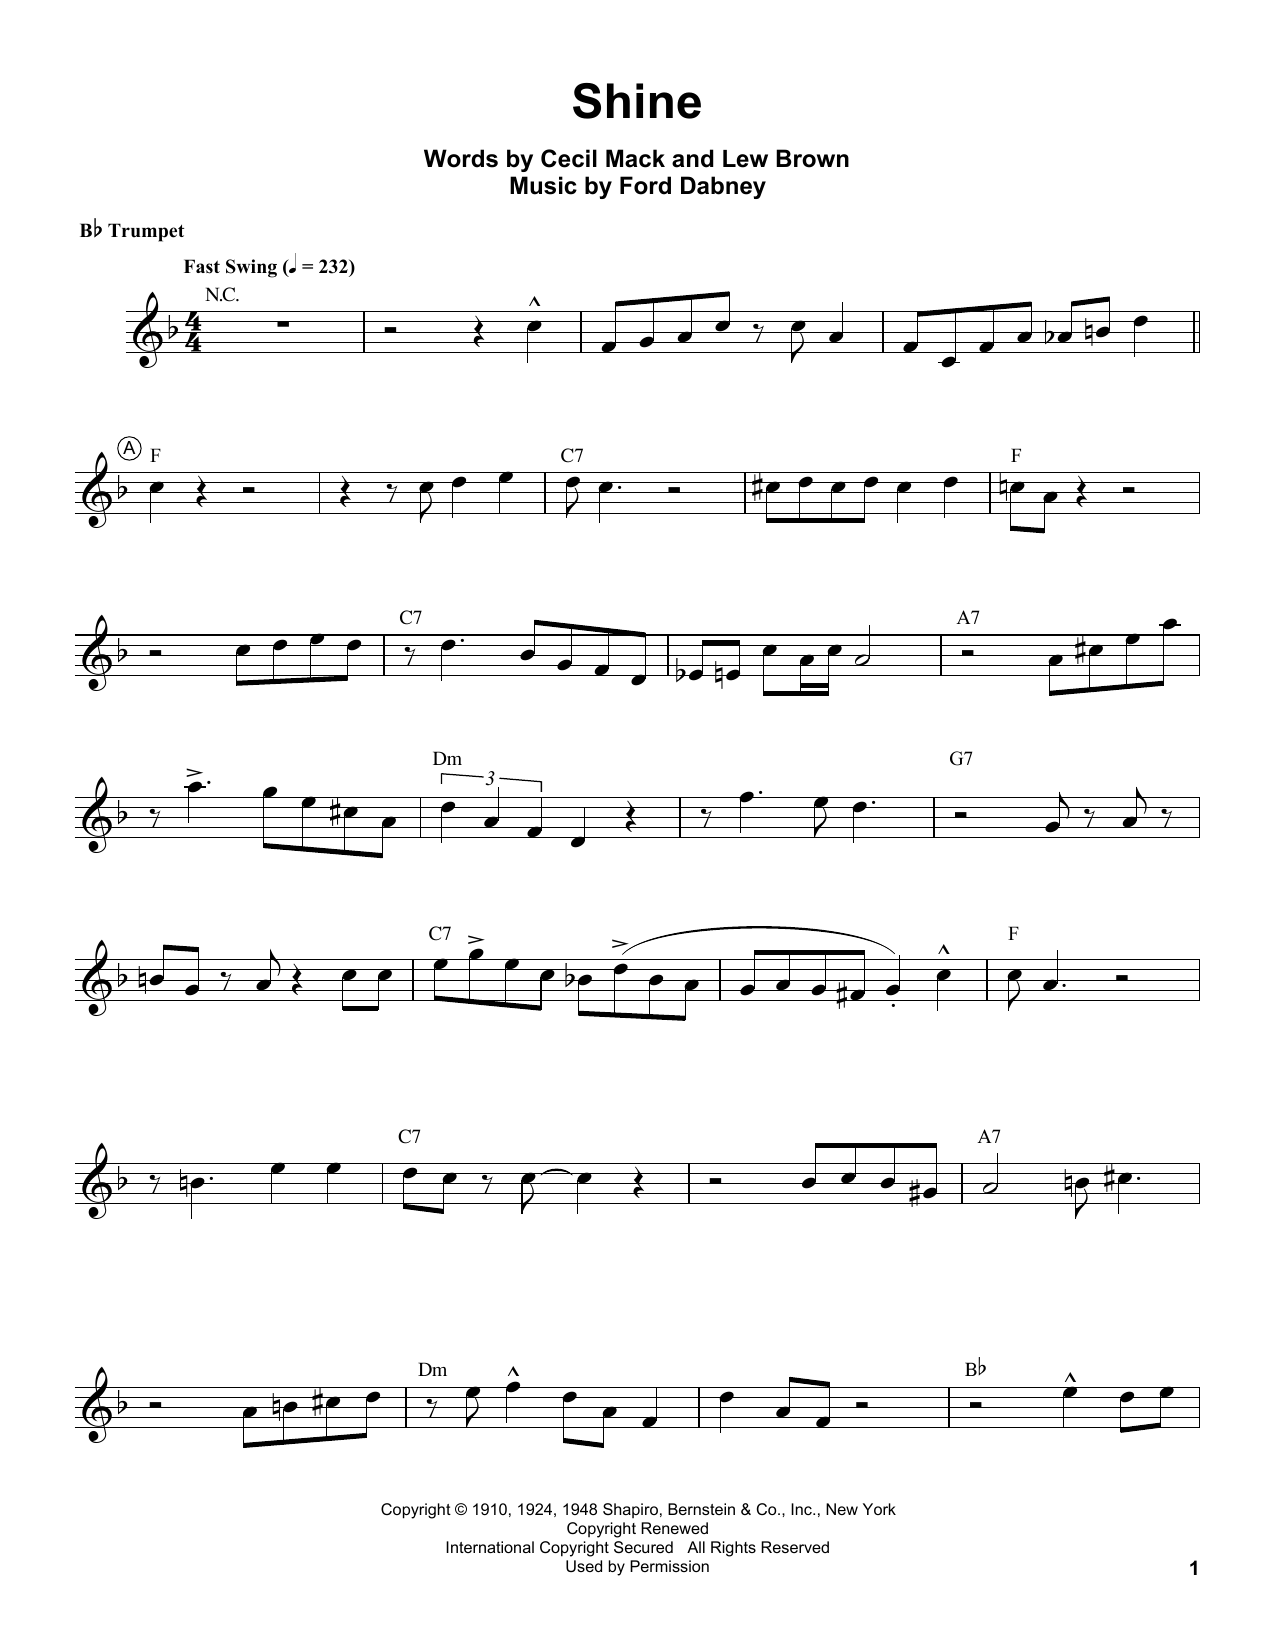 Louis Armstrong Shine Sheet Music Notes Chords Printable Folk